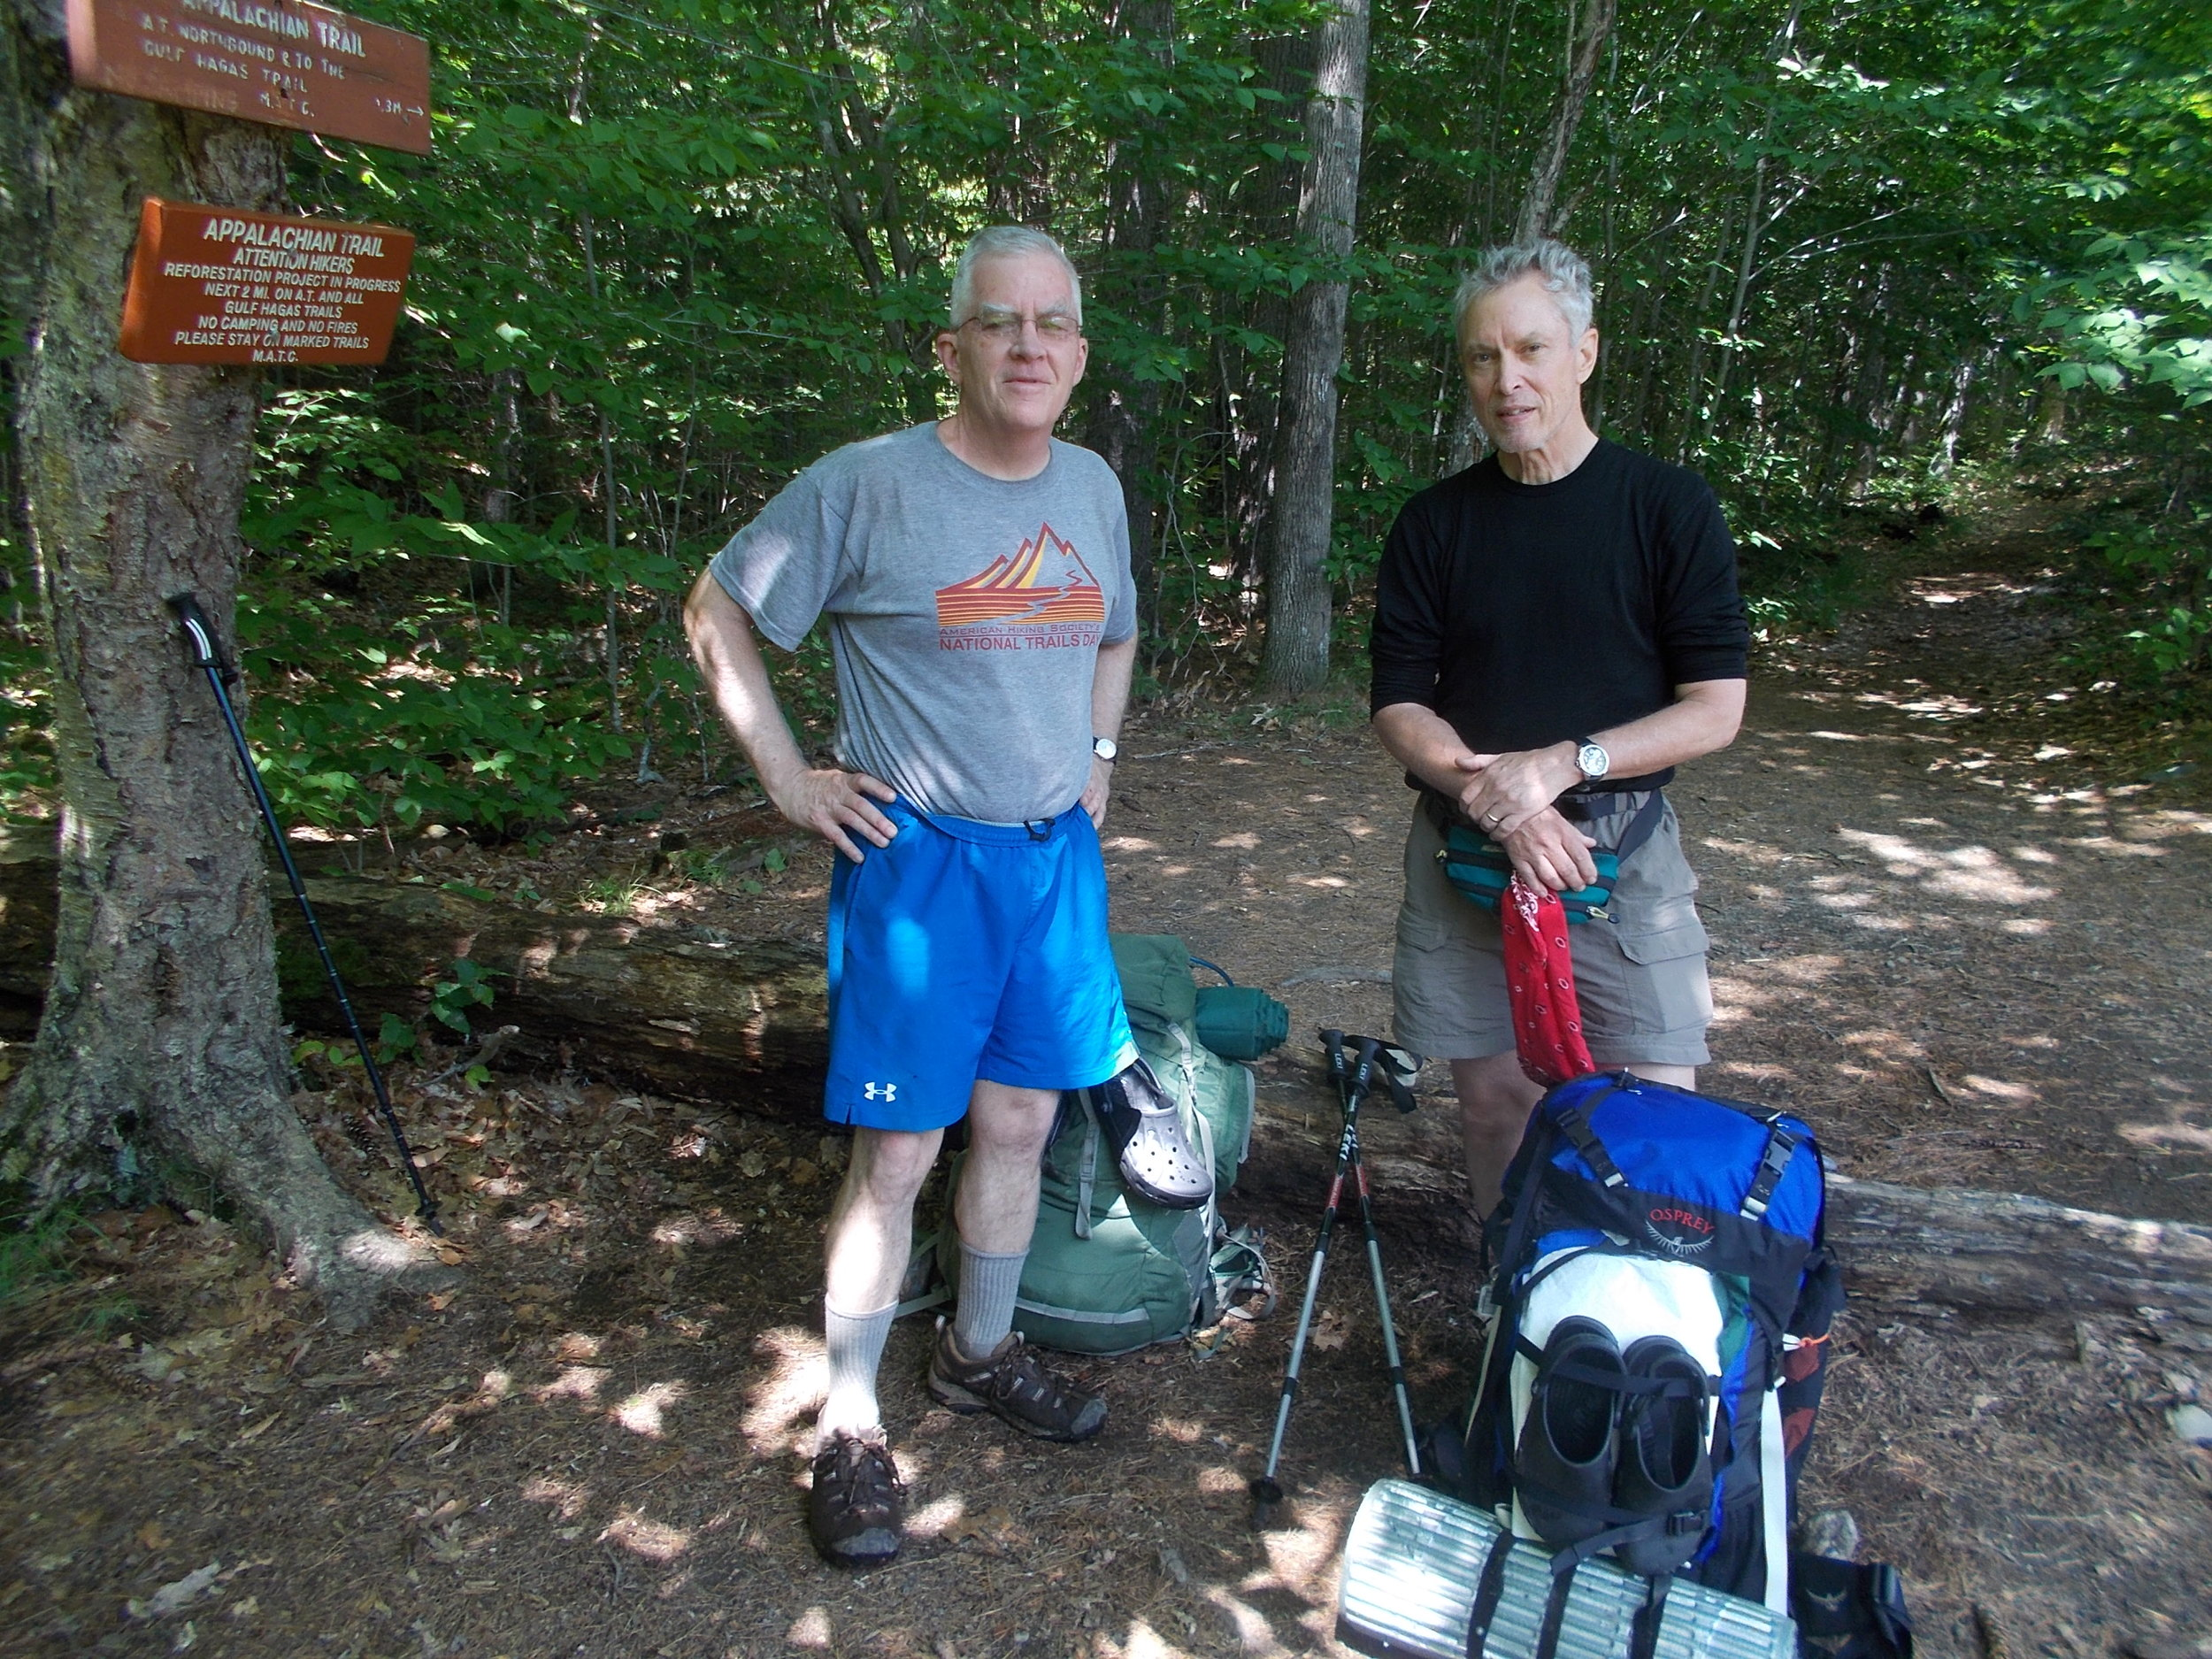 Don and fellow hiker, Ted Gregory, ready to take up the challenge of the 100-Mile Wilderness portion of the Appalachian Trail near Monson, Maine.